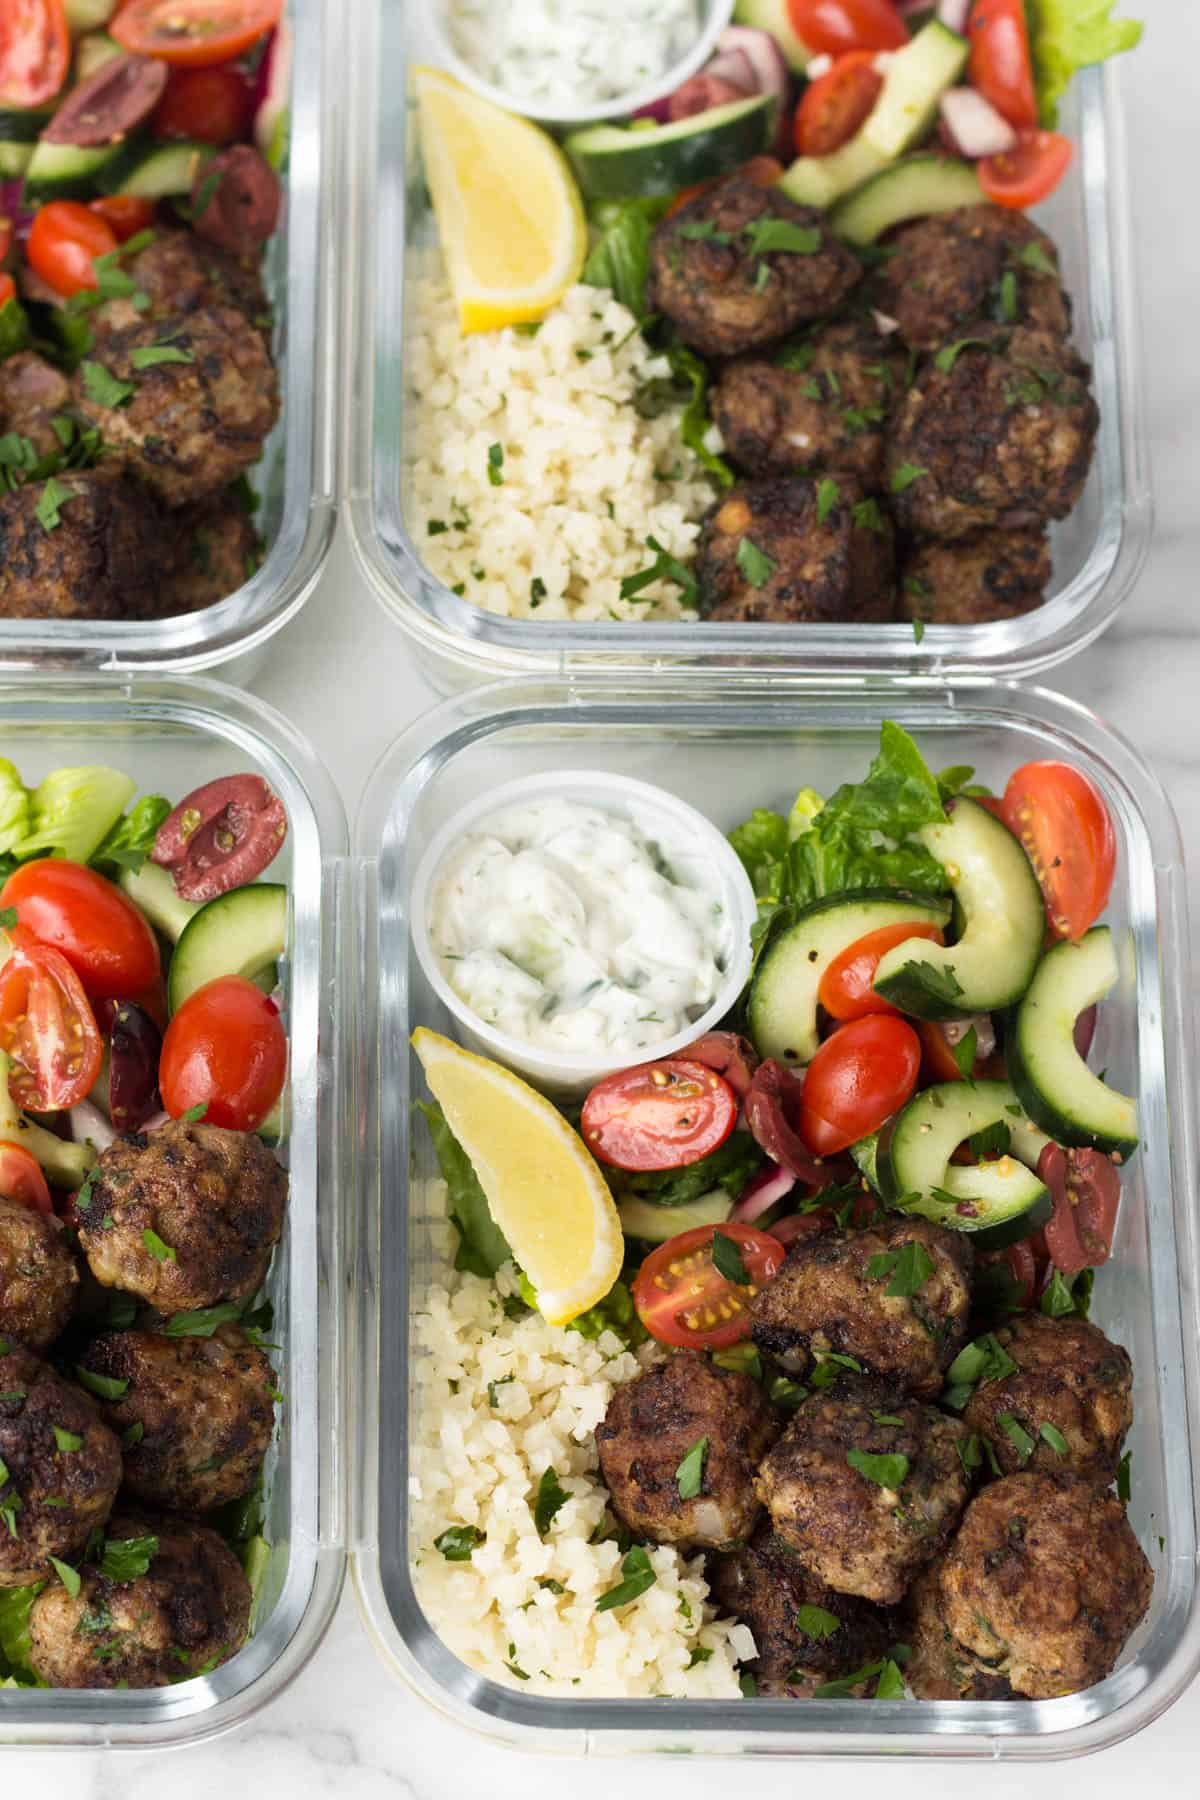 Greek lamb meatballs bowls with veggies and homemade sauce. Meal Prep Lunch Recipes